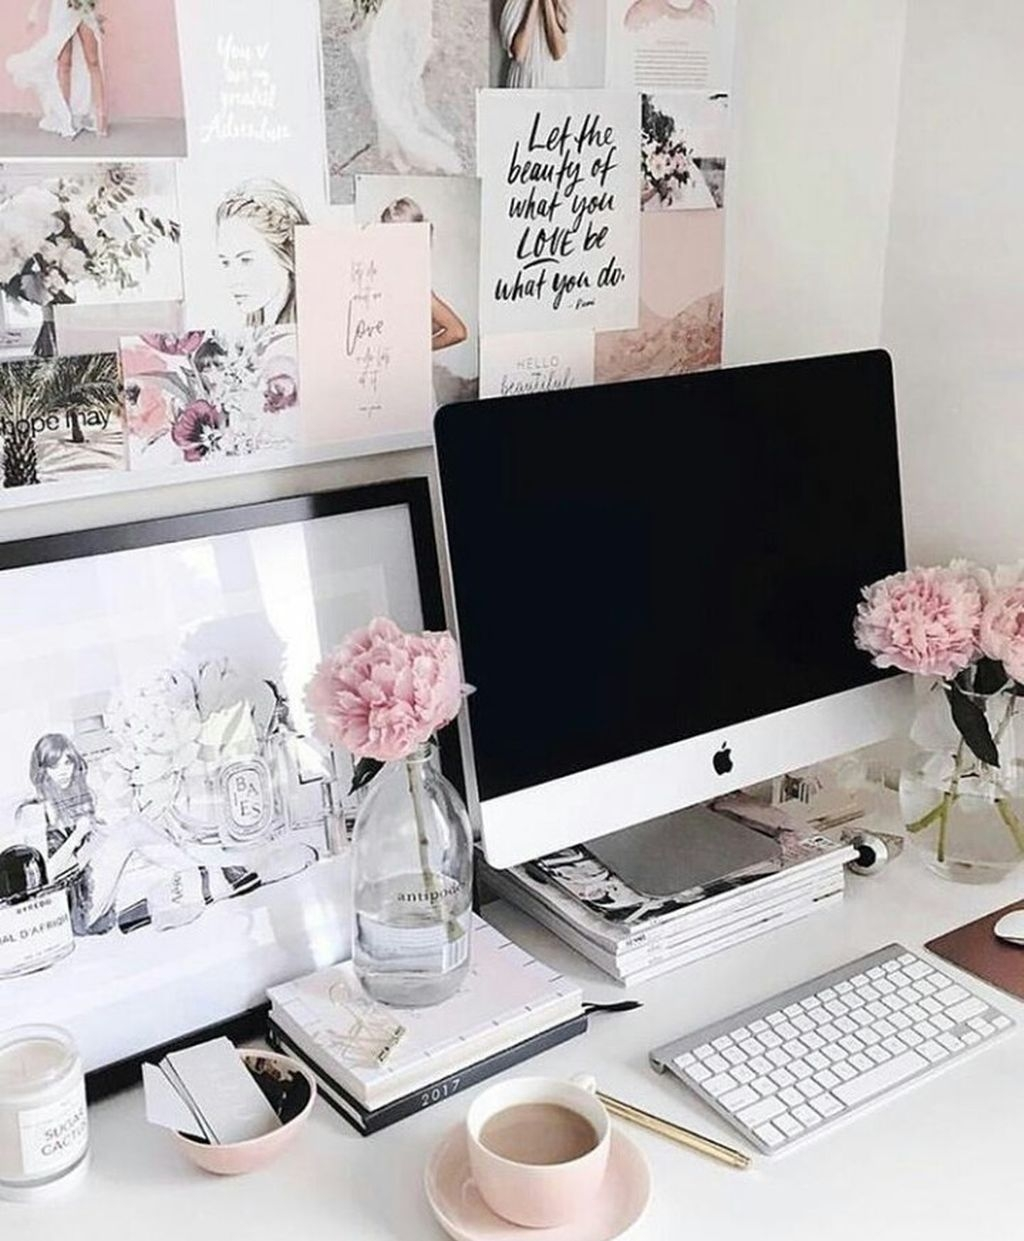 21 Feminine Home Office Designs Decorating Ideas: 37 Elegant And Exquisite Feminine Home Office Design Ideas